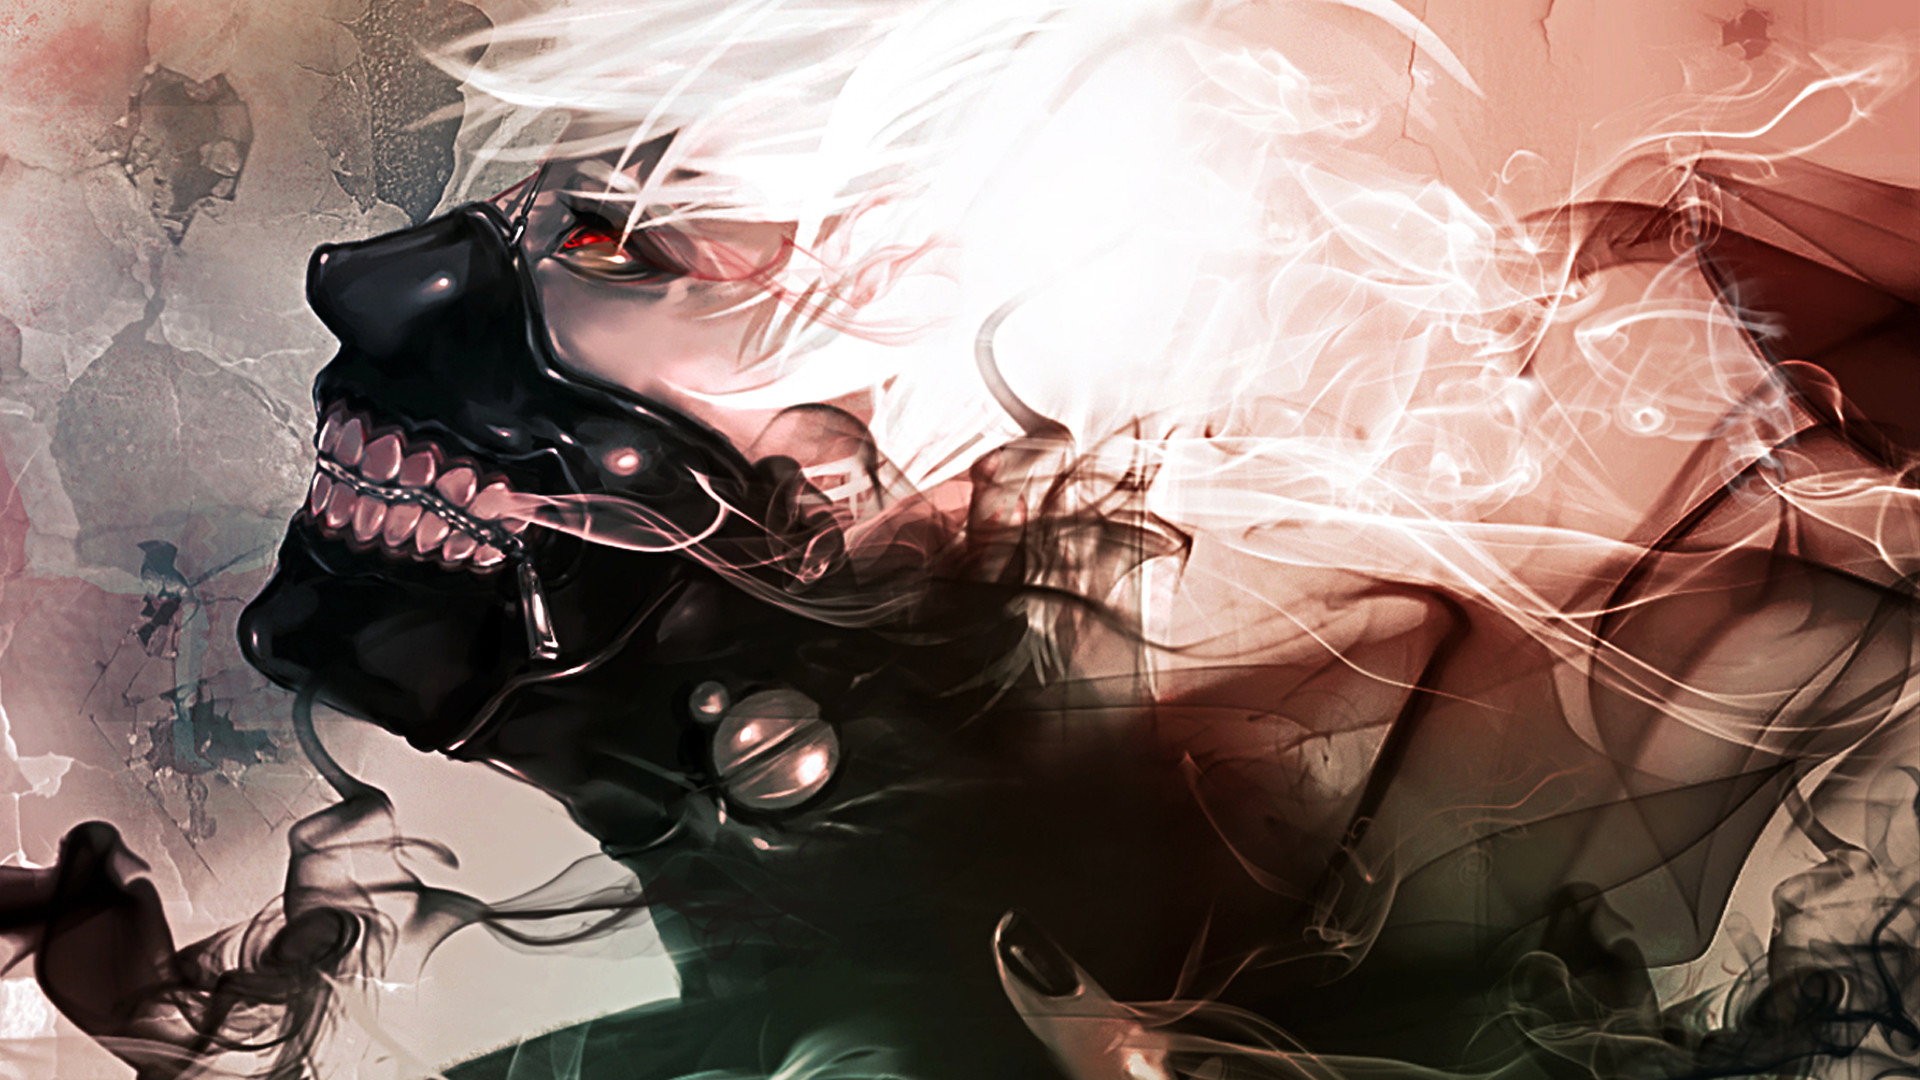 … Anime Wallpapers Tokyo Ghoul HD 4K Download For Mobile iPhone & PC